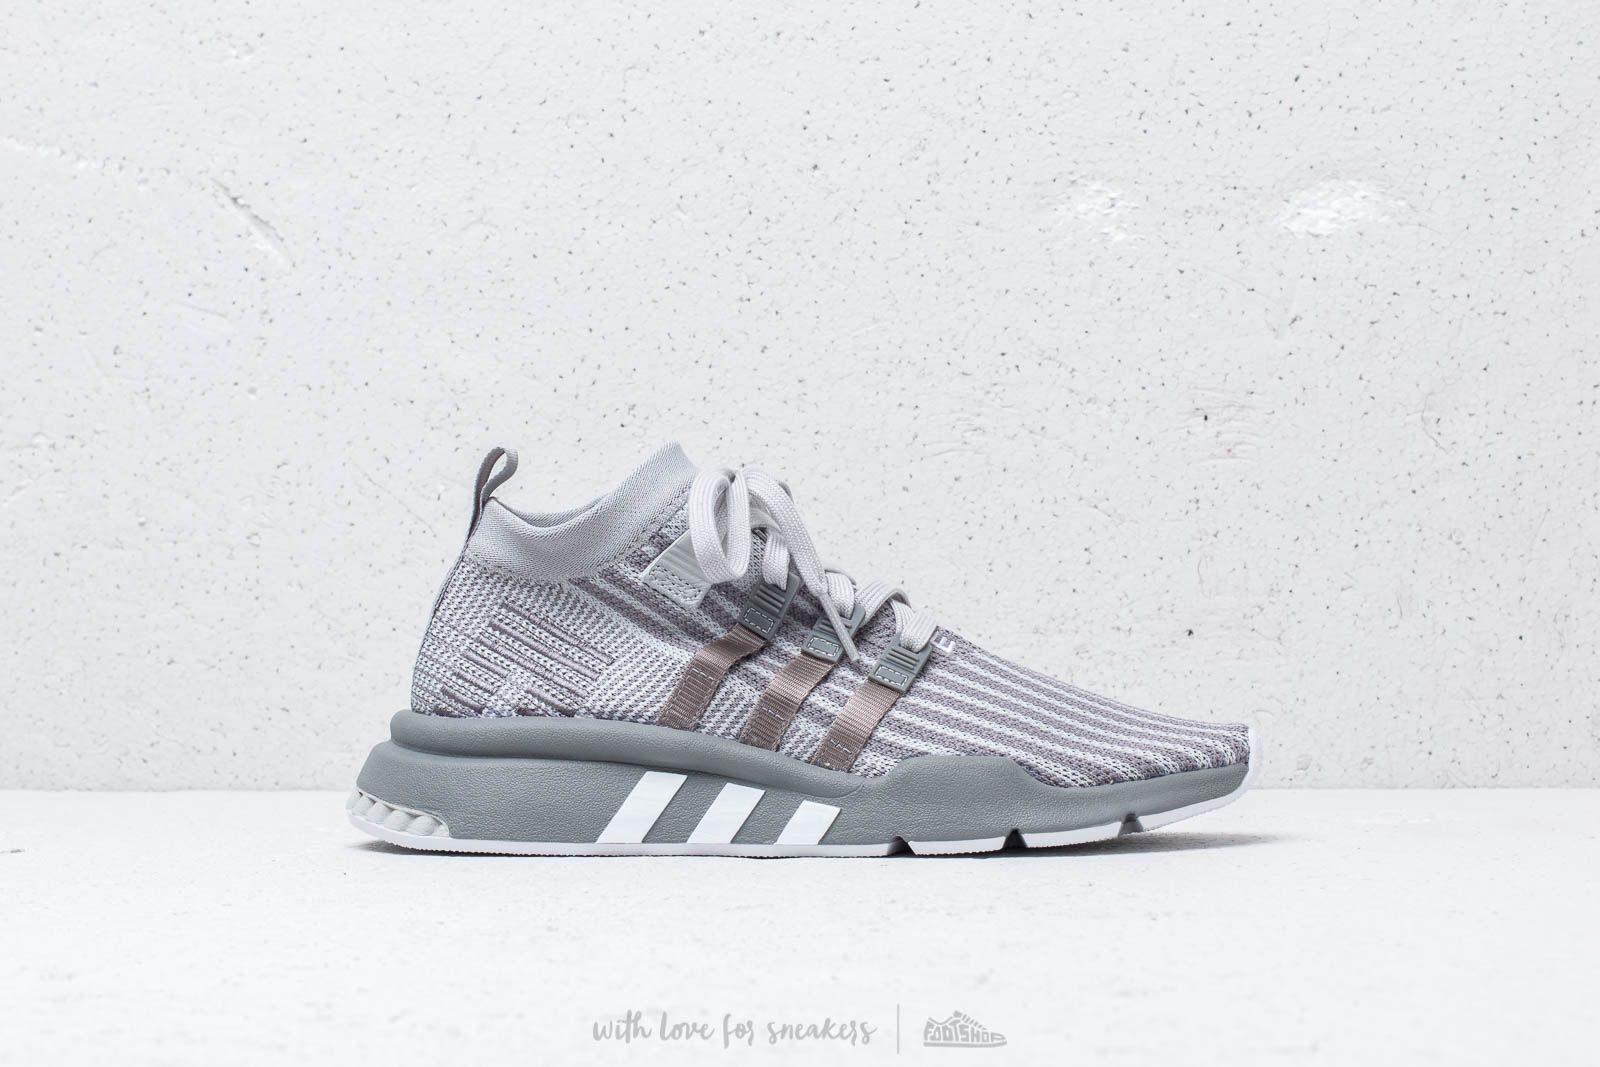 c74b3a9b adidas EQT Support Mid Adv Primeknit Grey Two/ Grey Three/ Solar ...